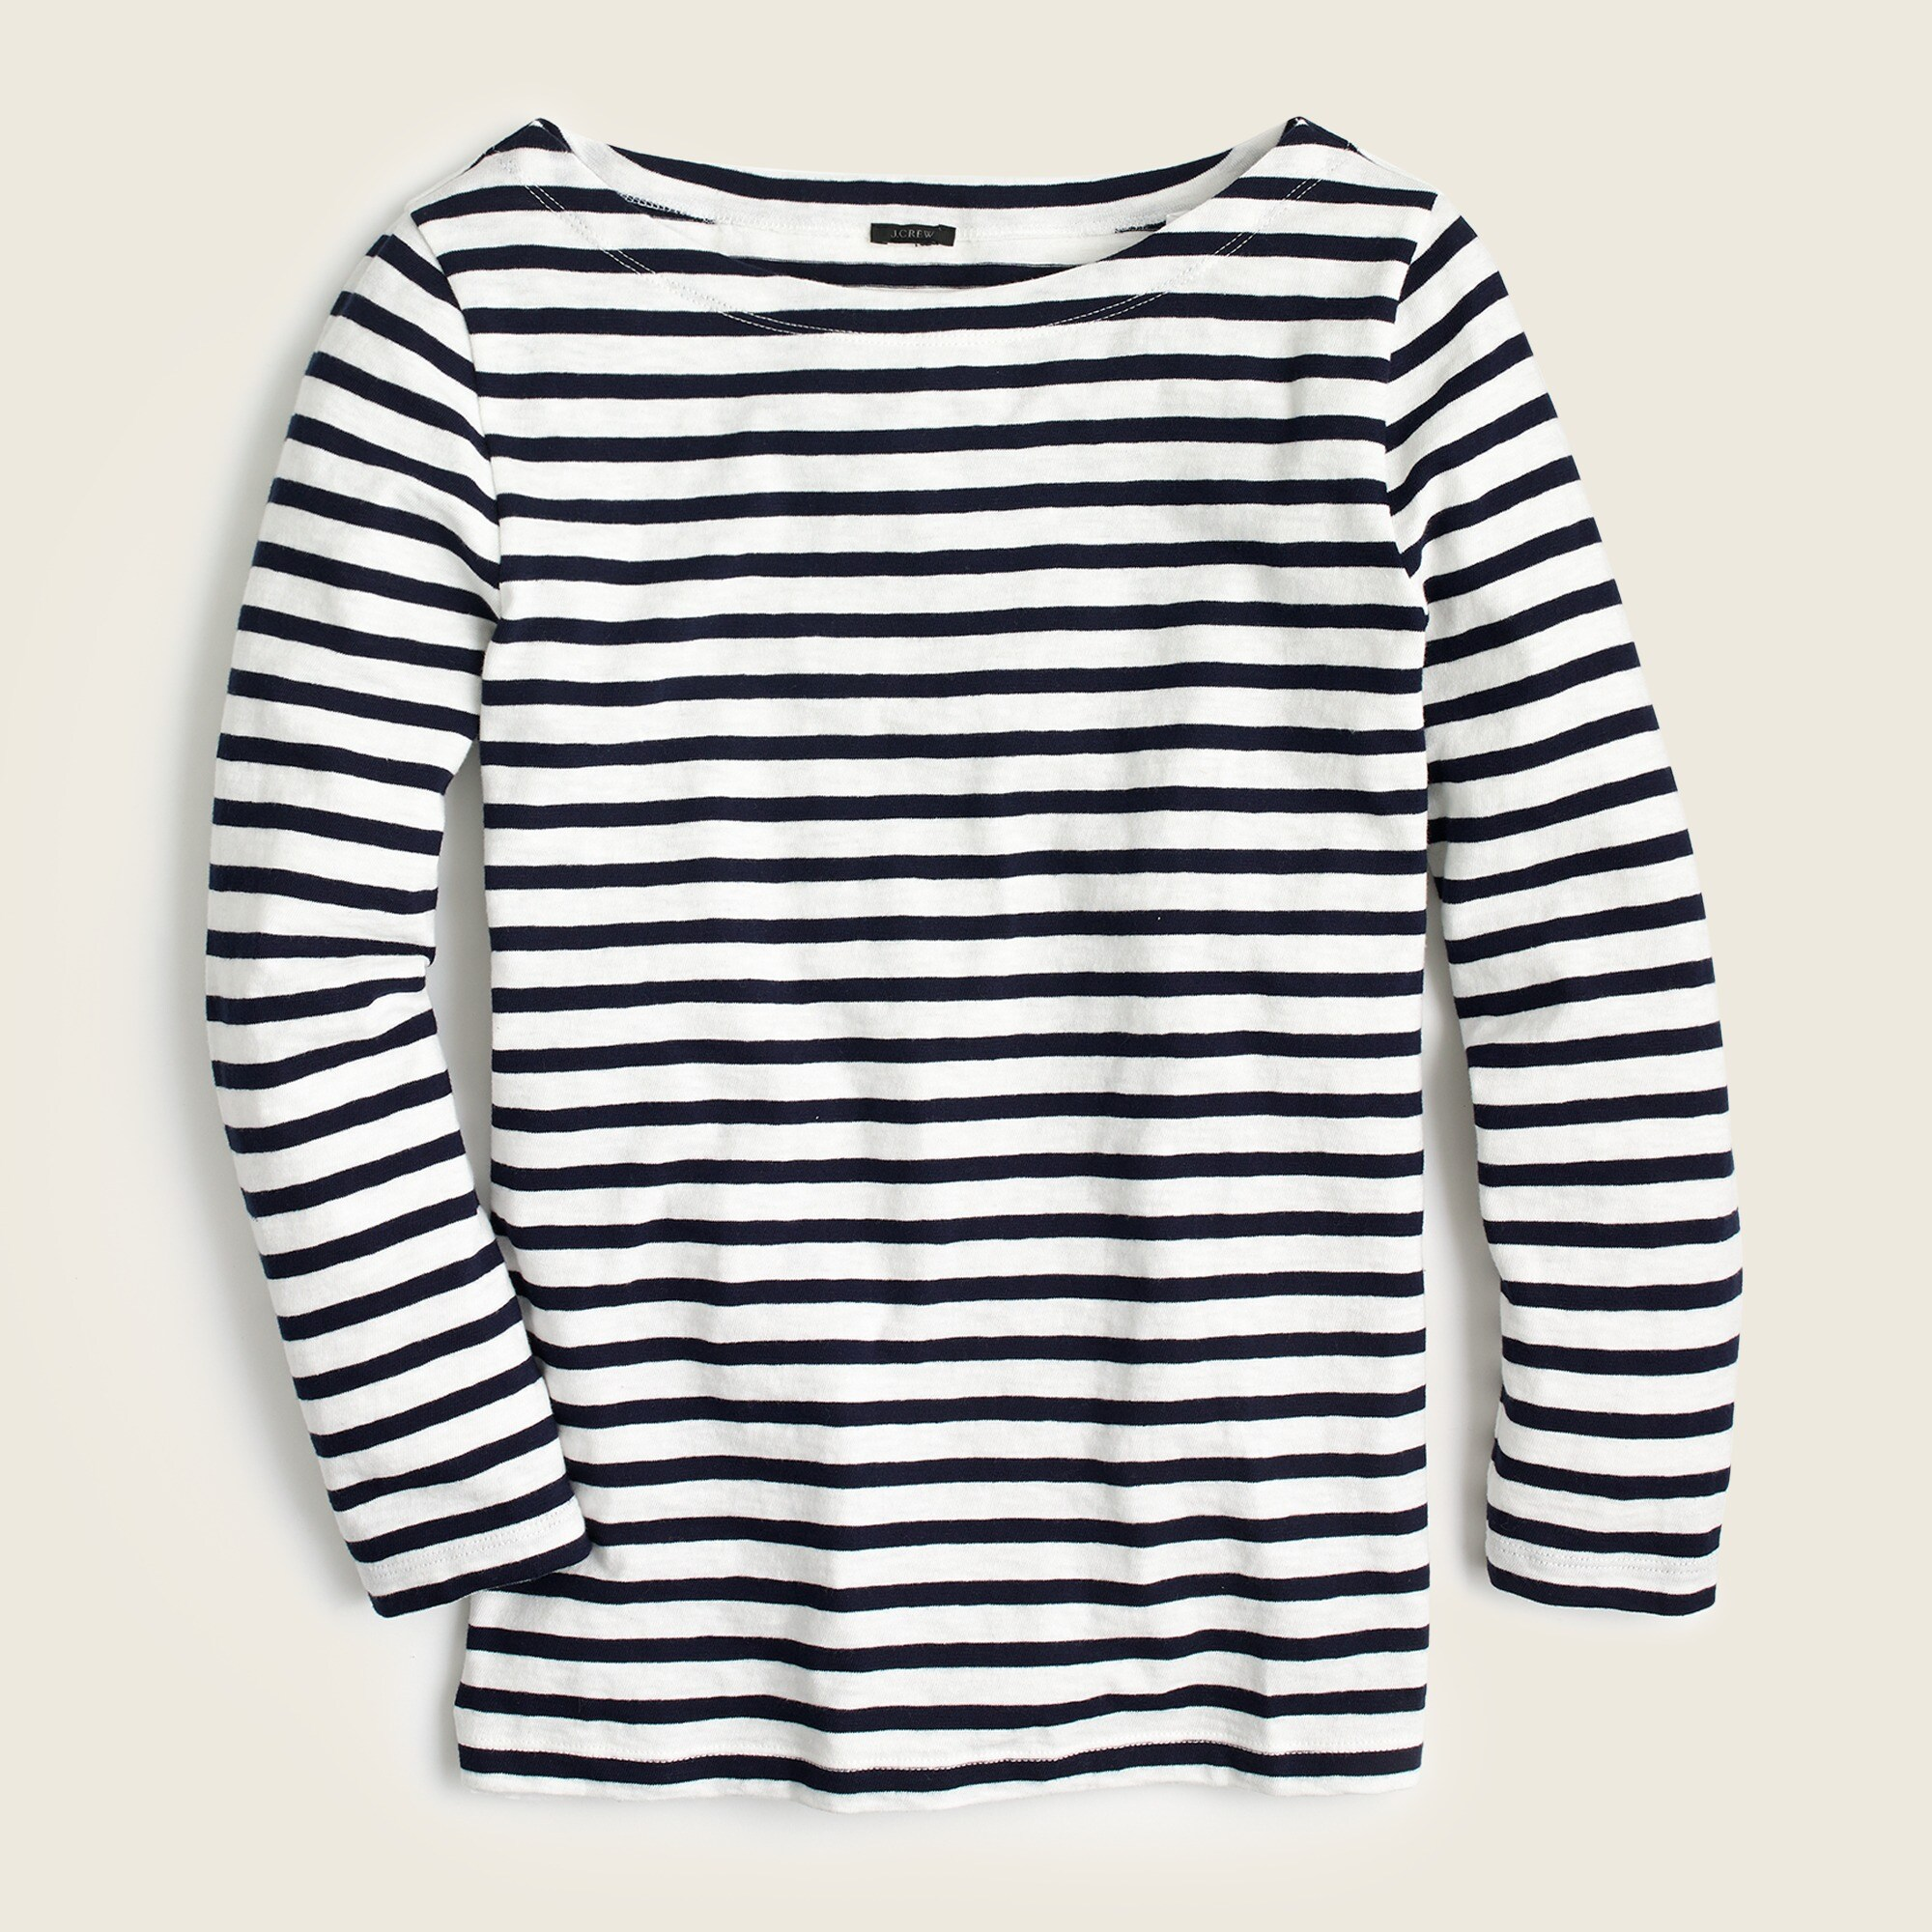 Image 4 for Striped boatneck T-shirt